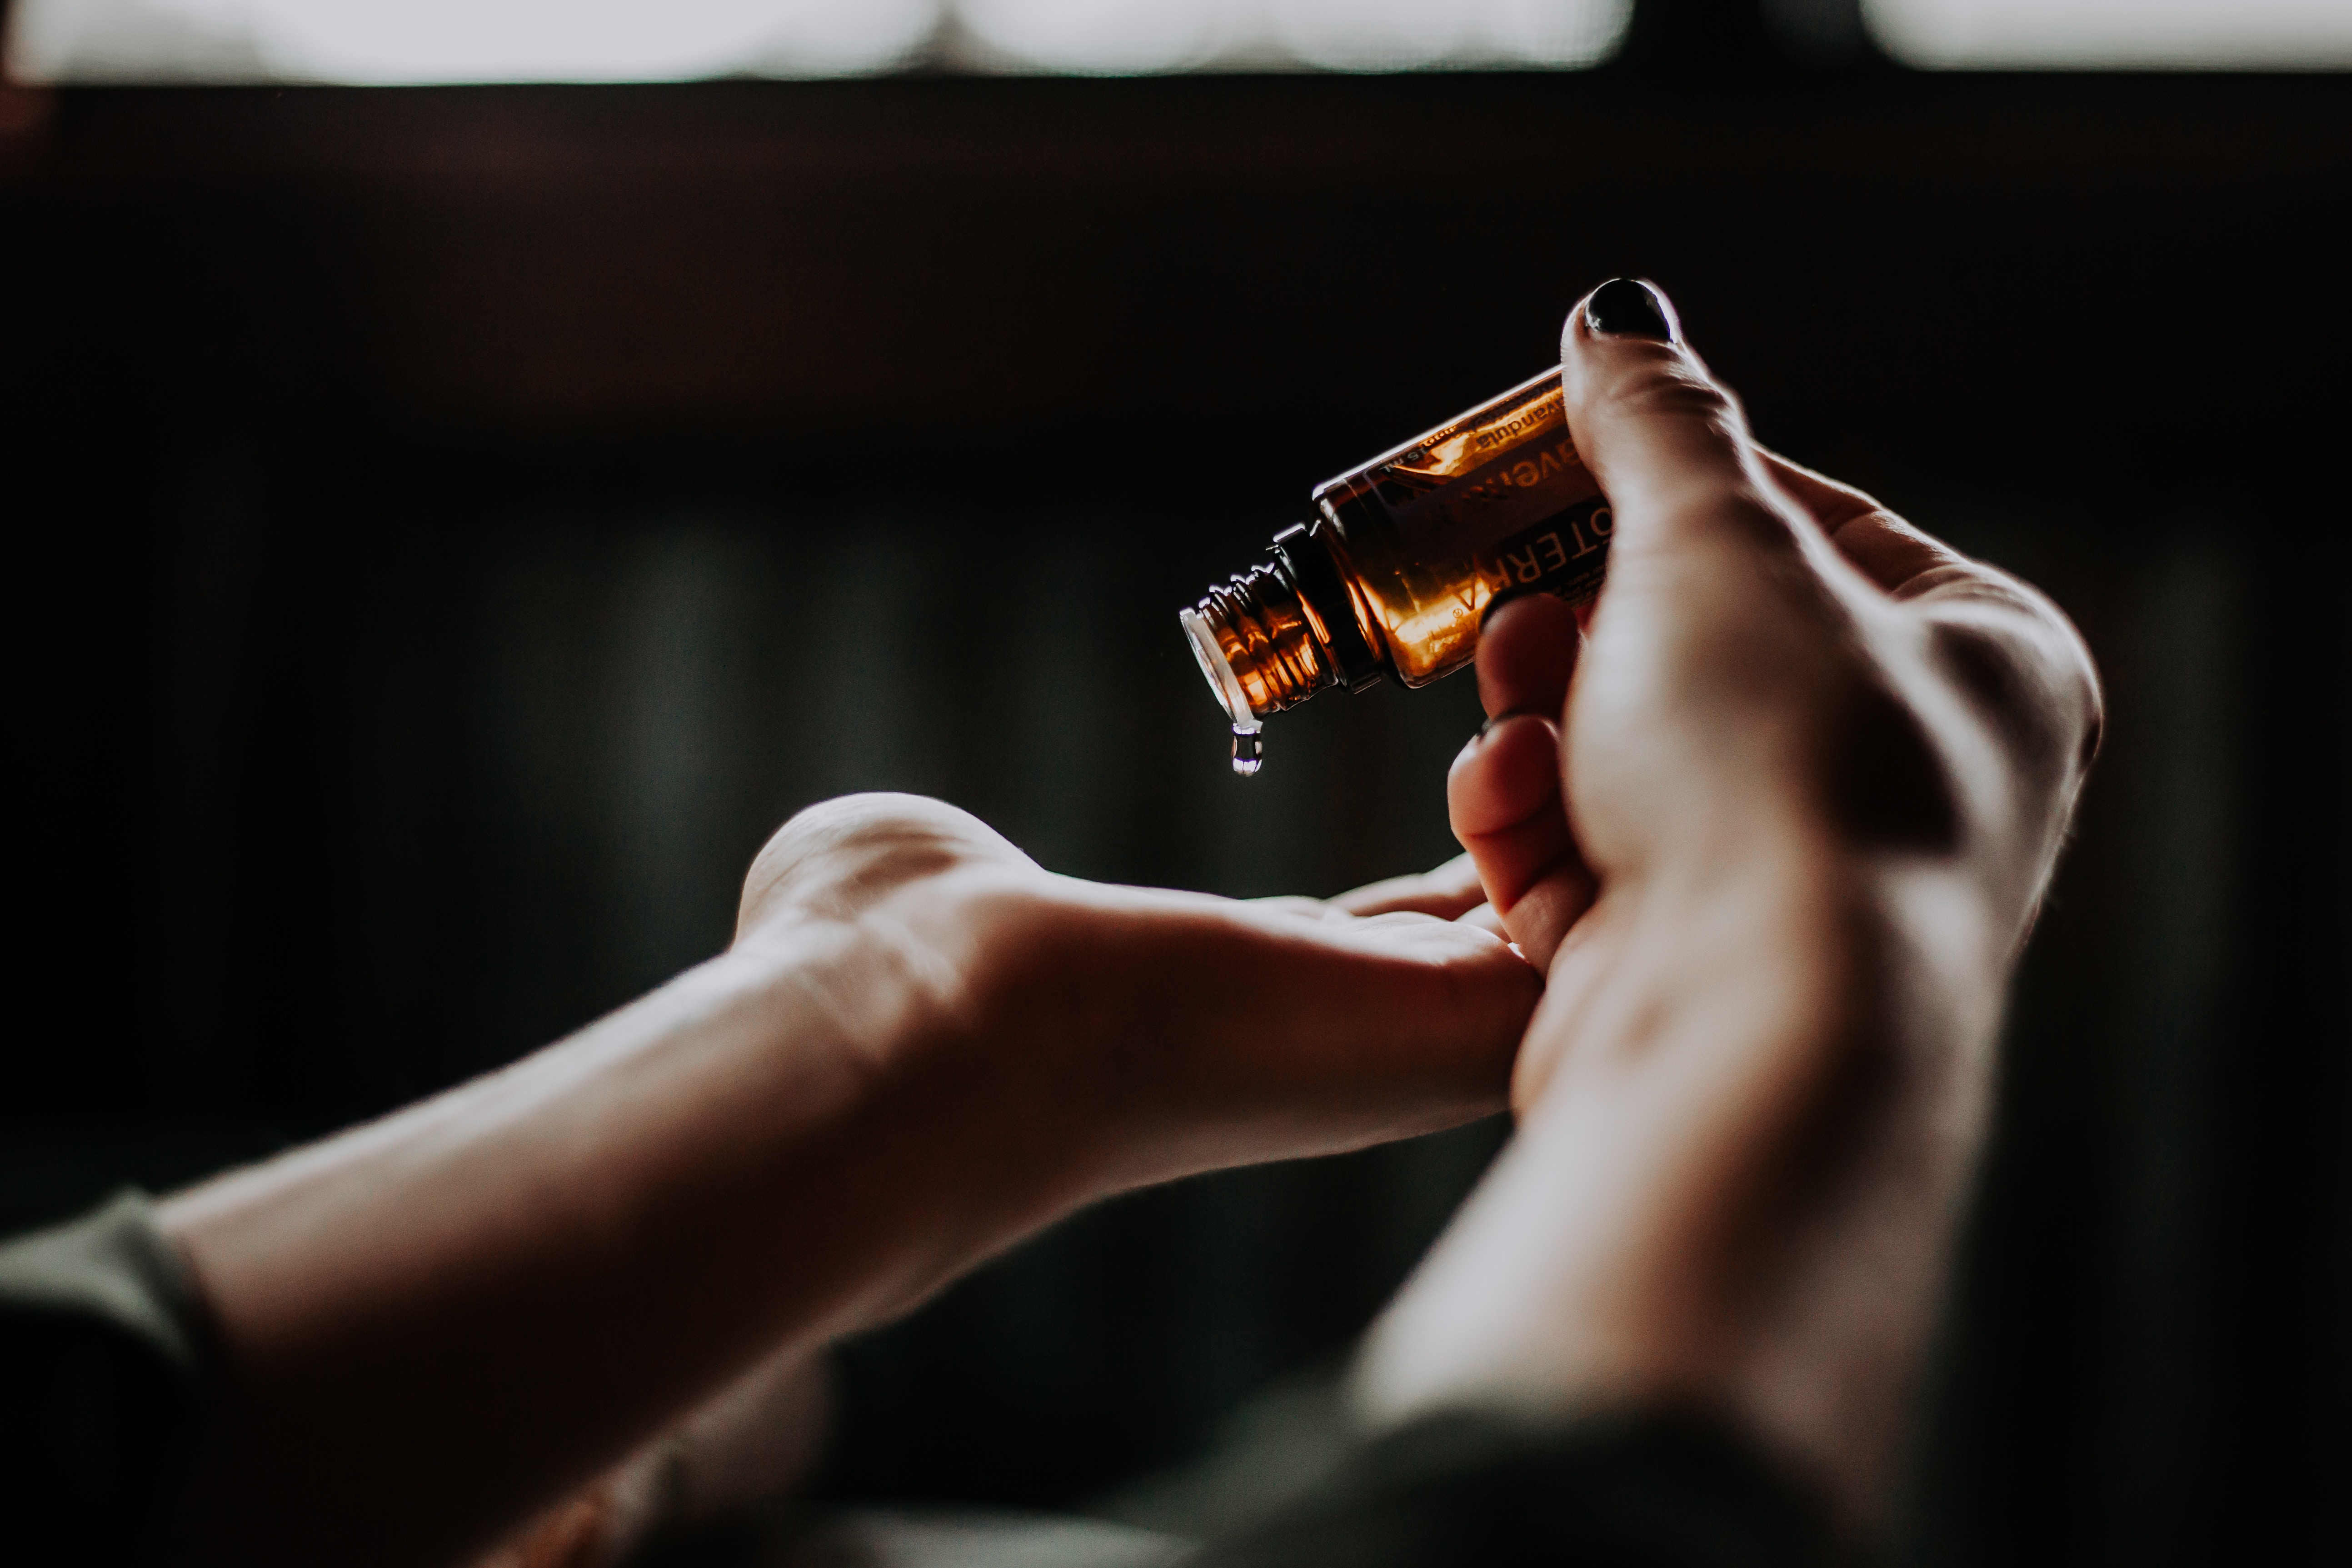 5 beauty benefits you can get from cbd oil